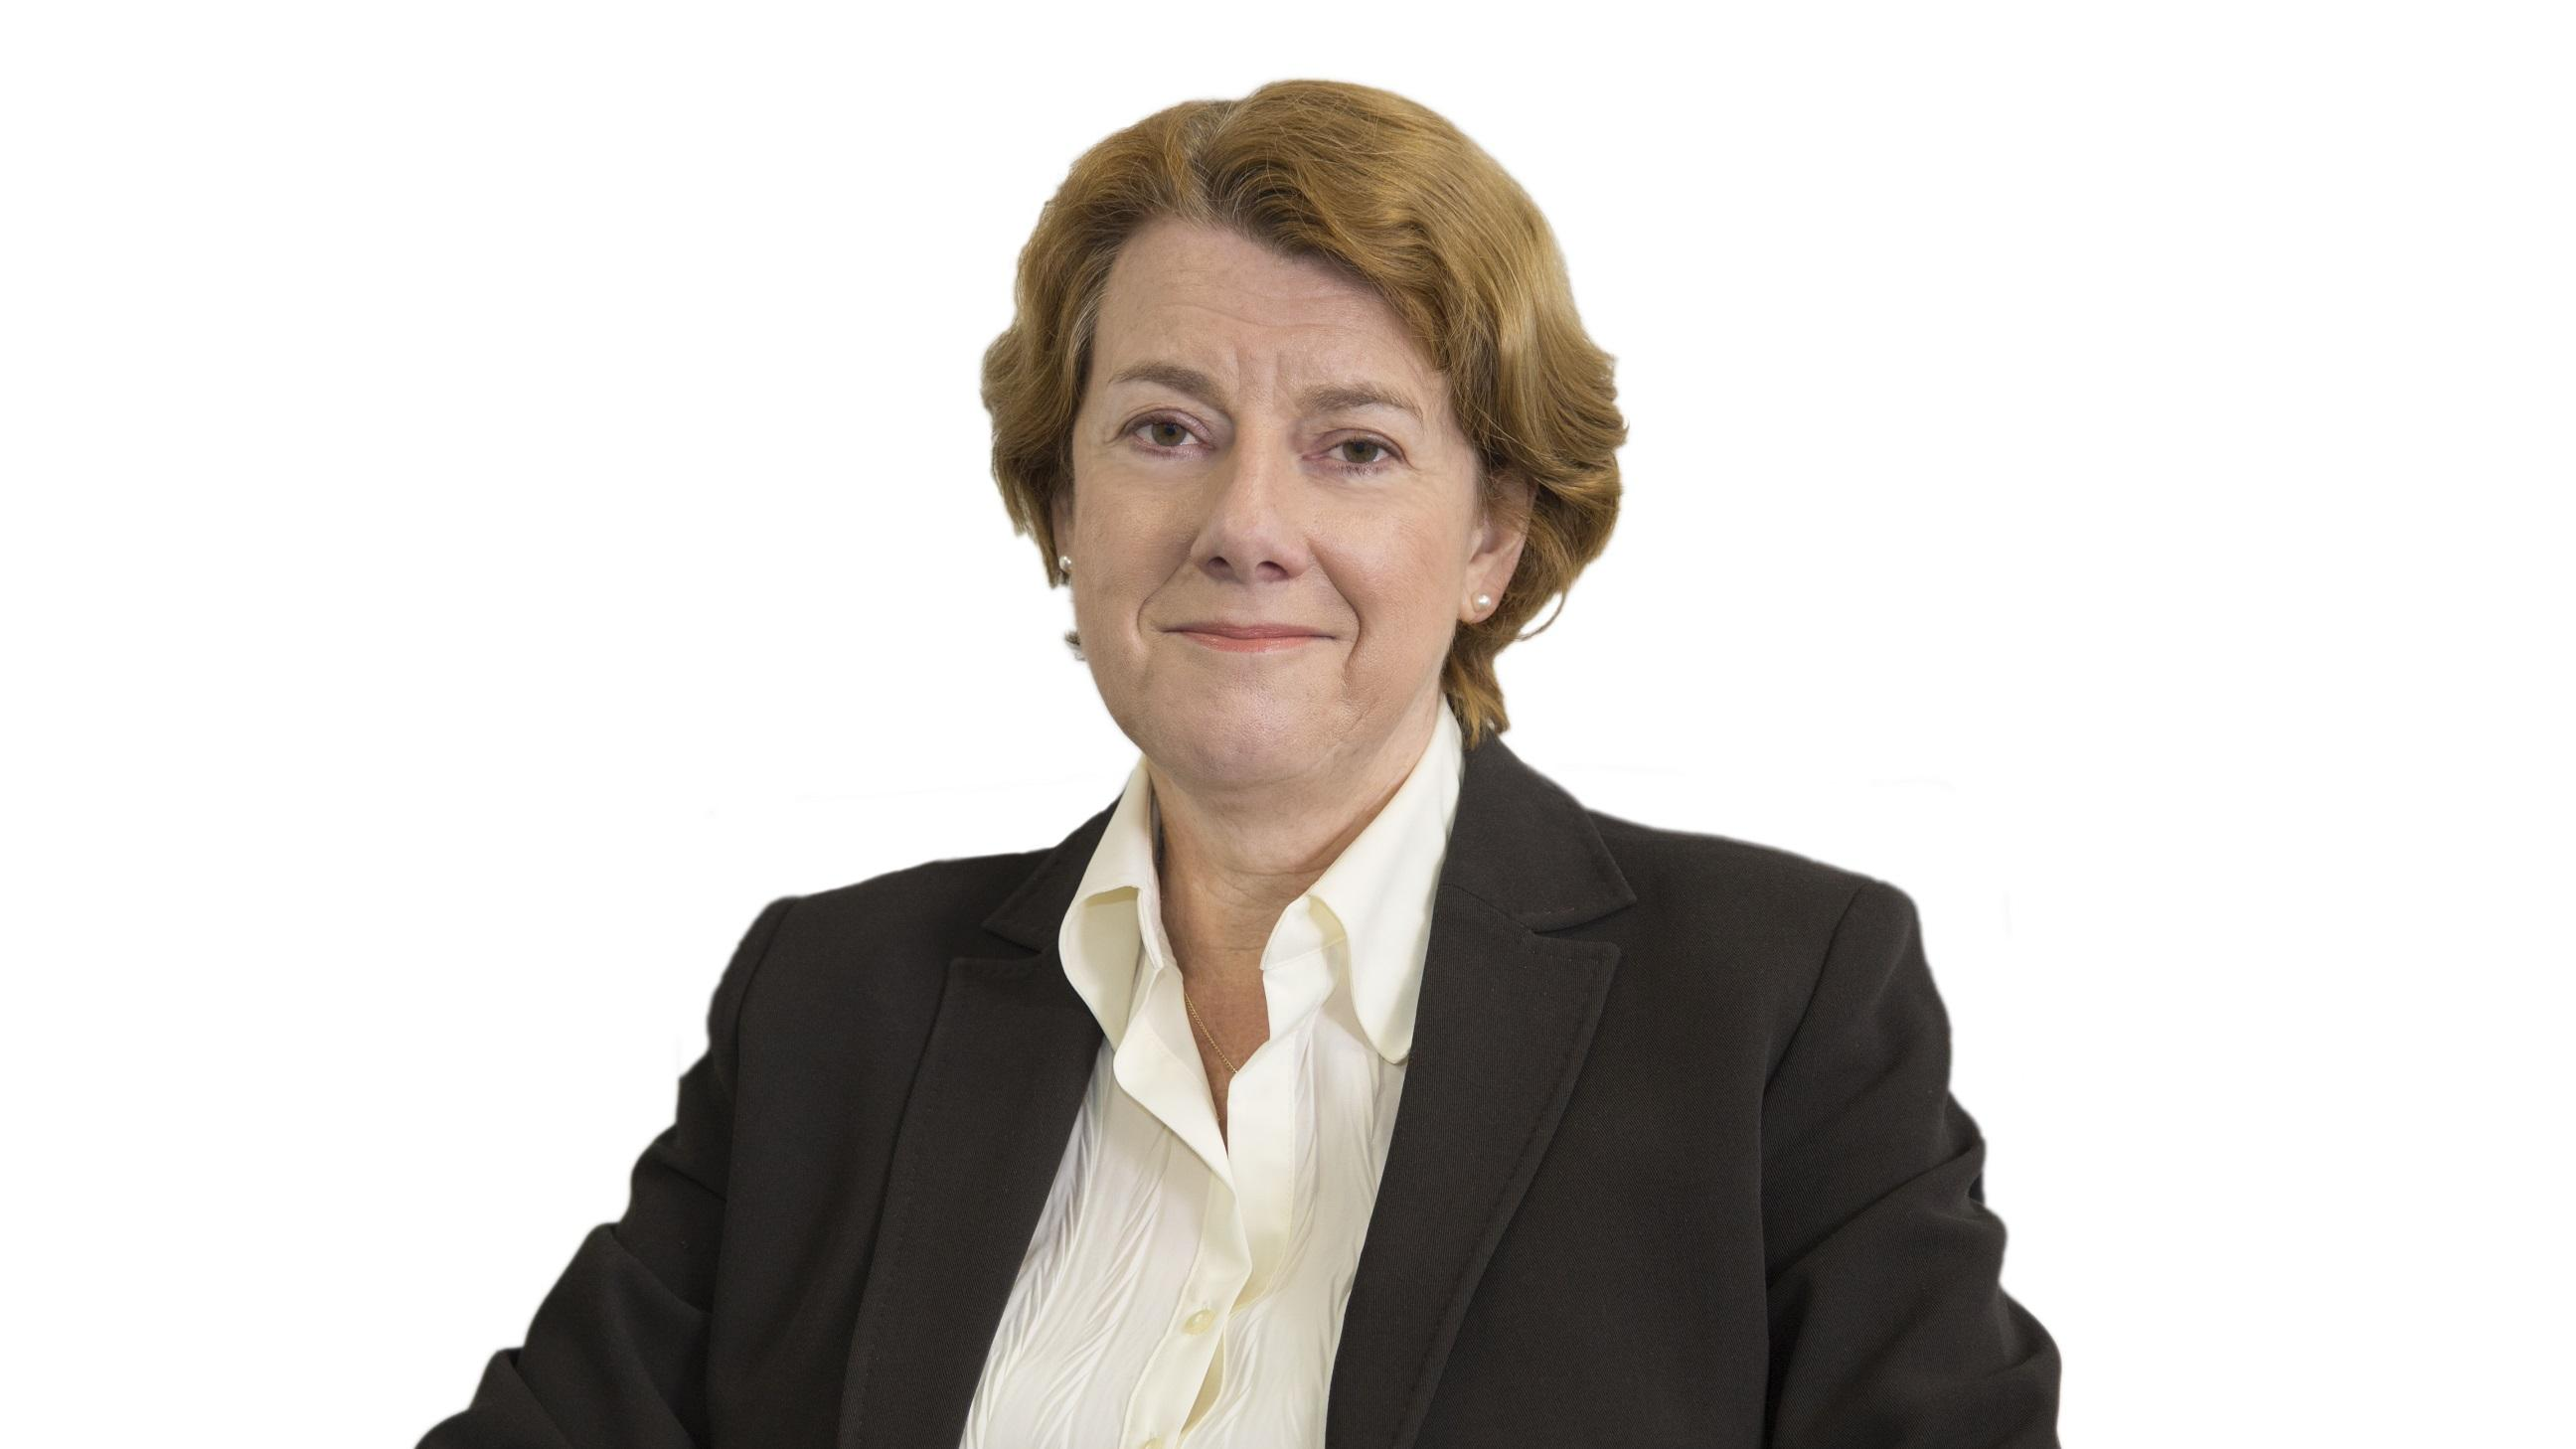 Sally Morgan, Baroness Morgan of Huyton